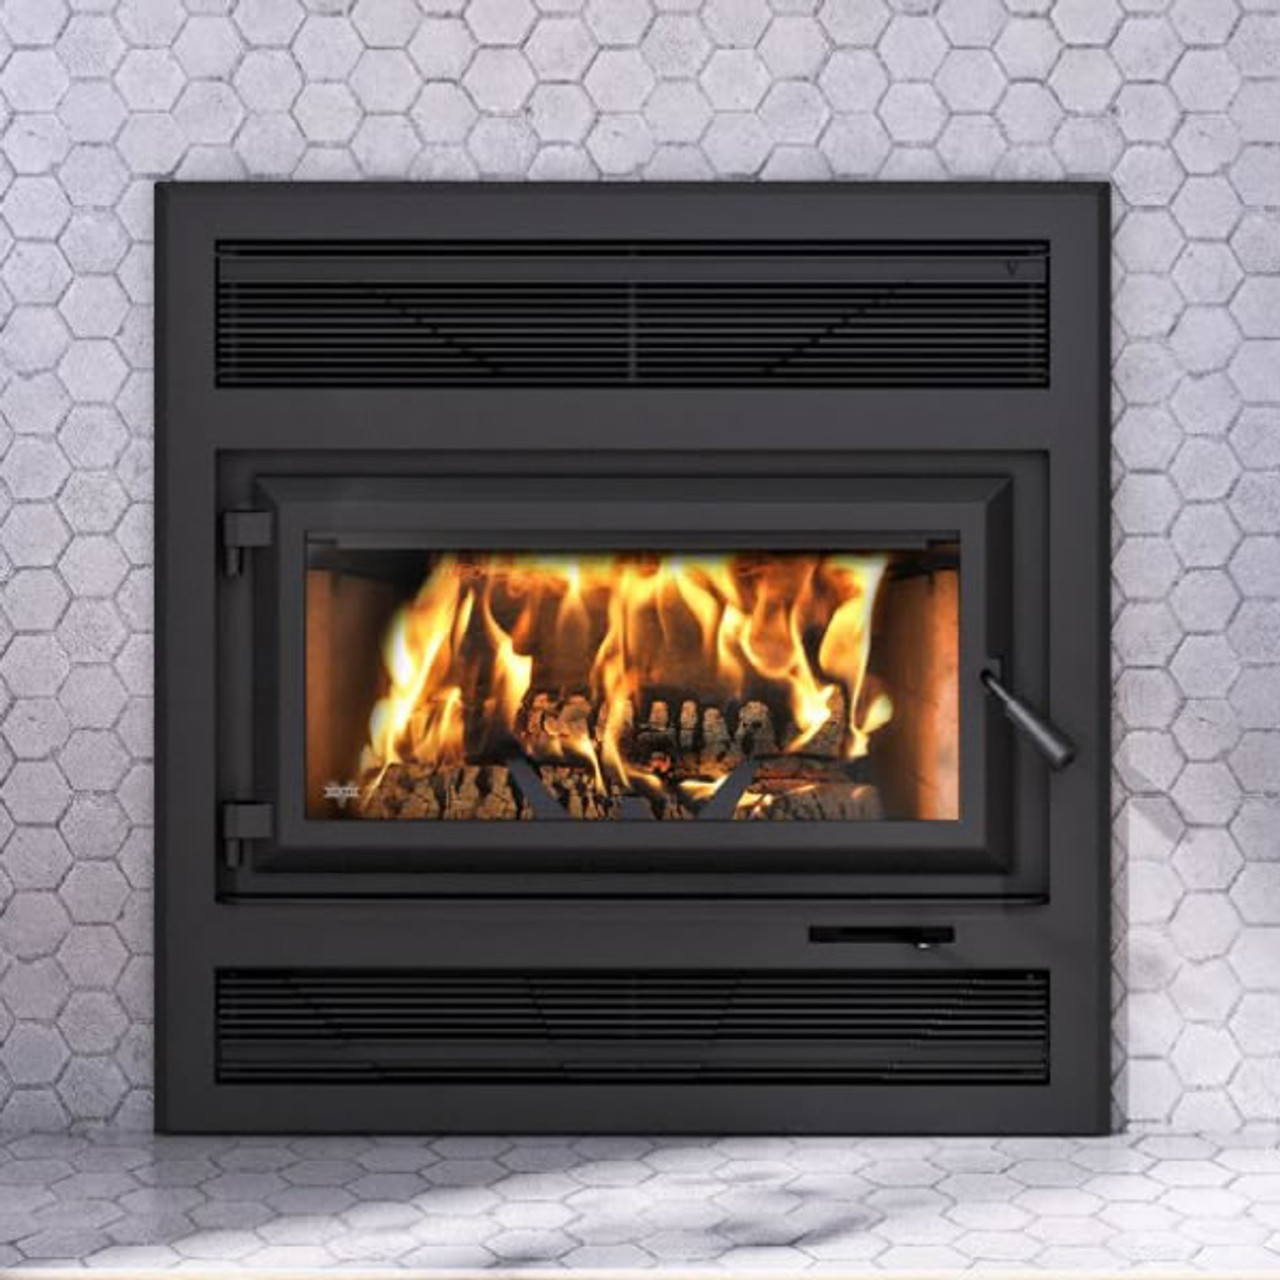 Ventis HE250R ZC Wood Fireplace with Blower -Unit